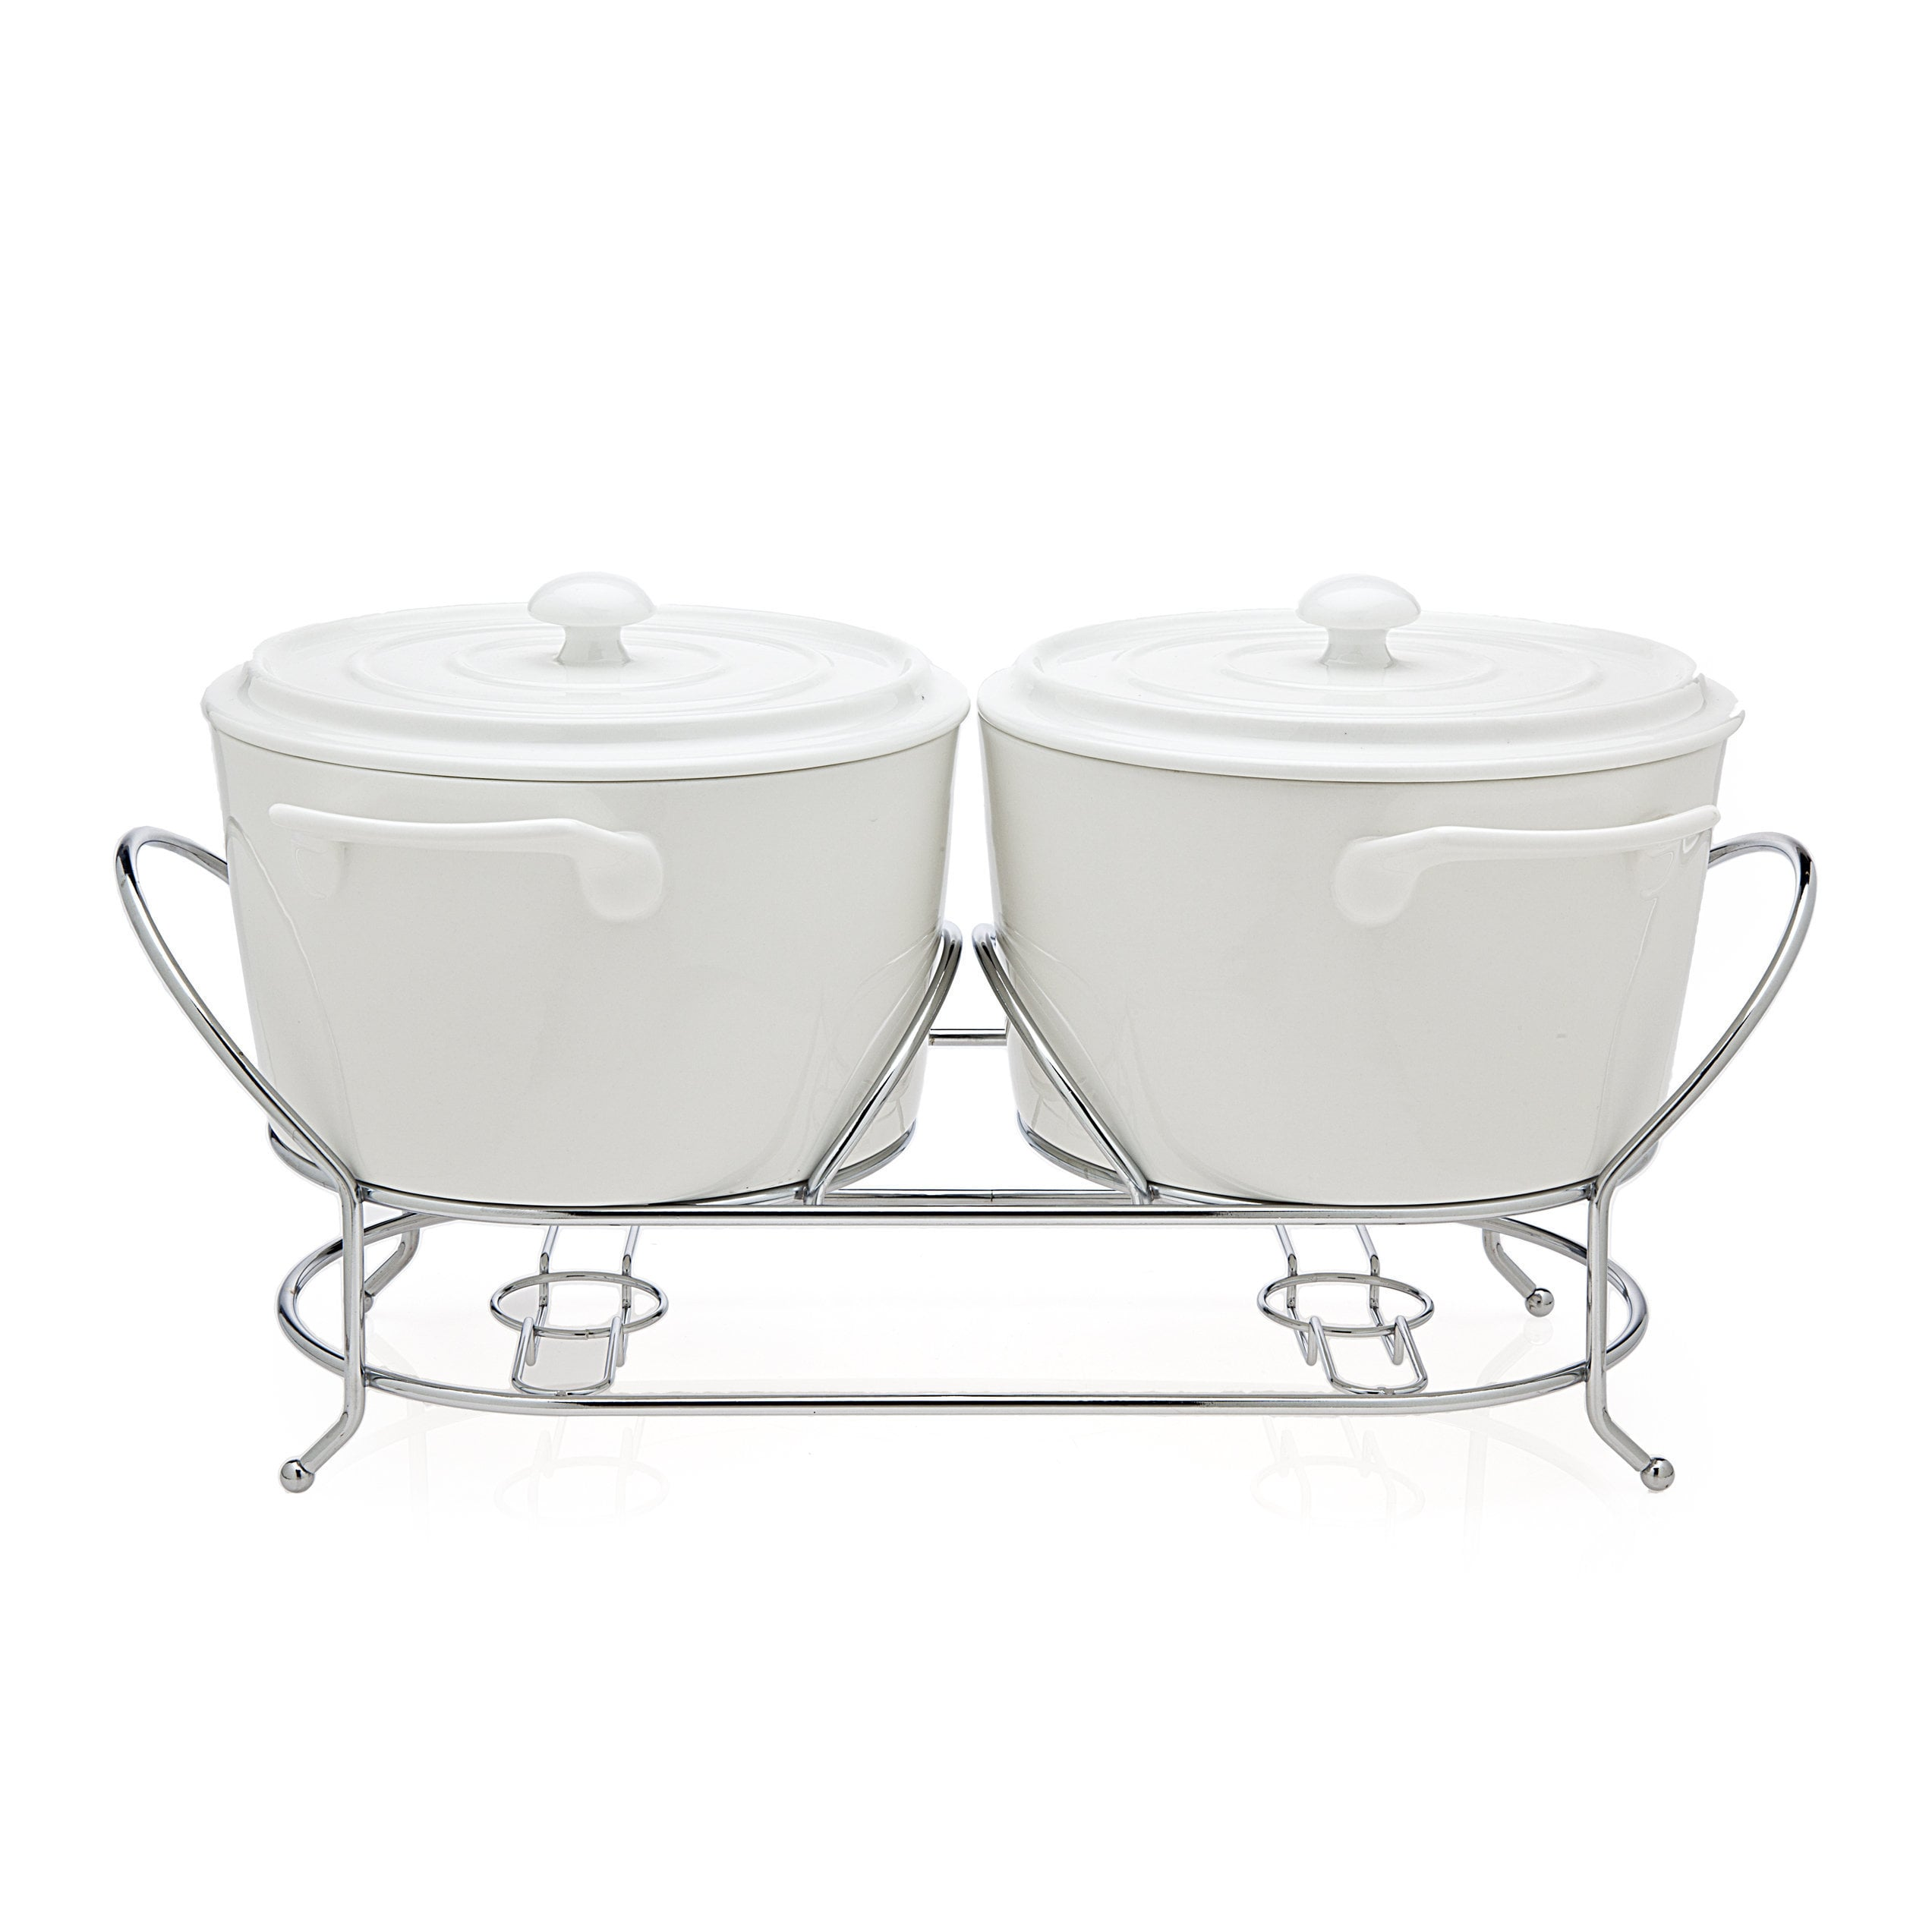 Cucina Kitchen Products Godinger La Cucina Double Warmer